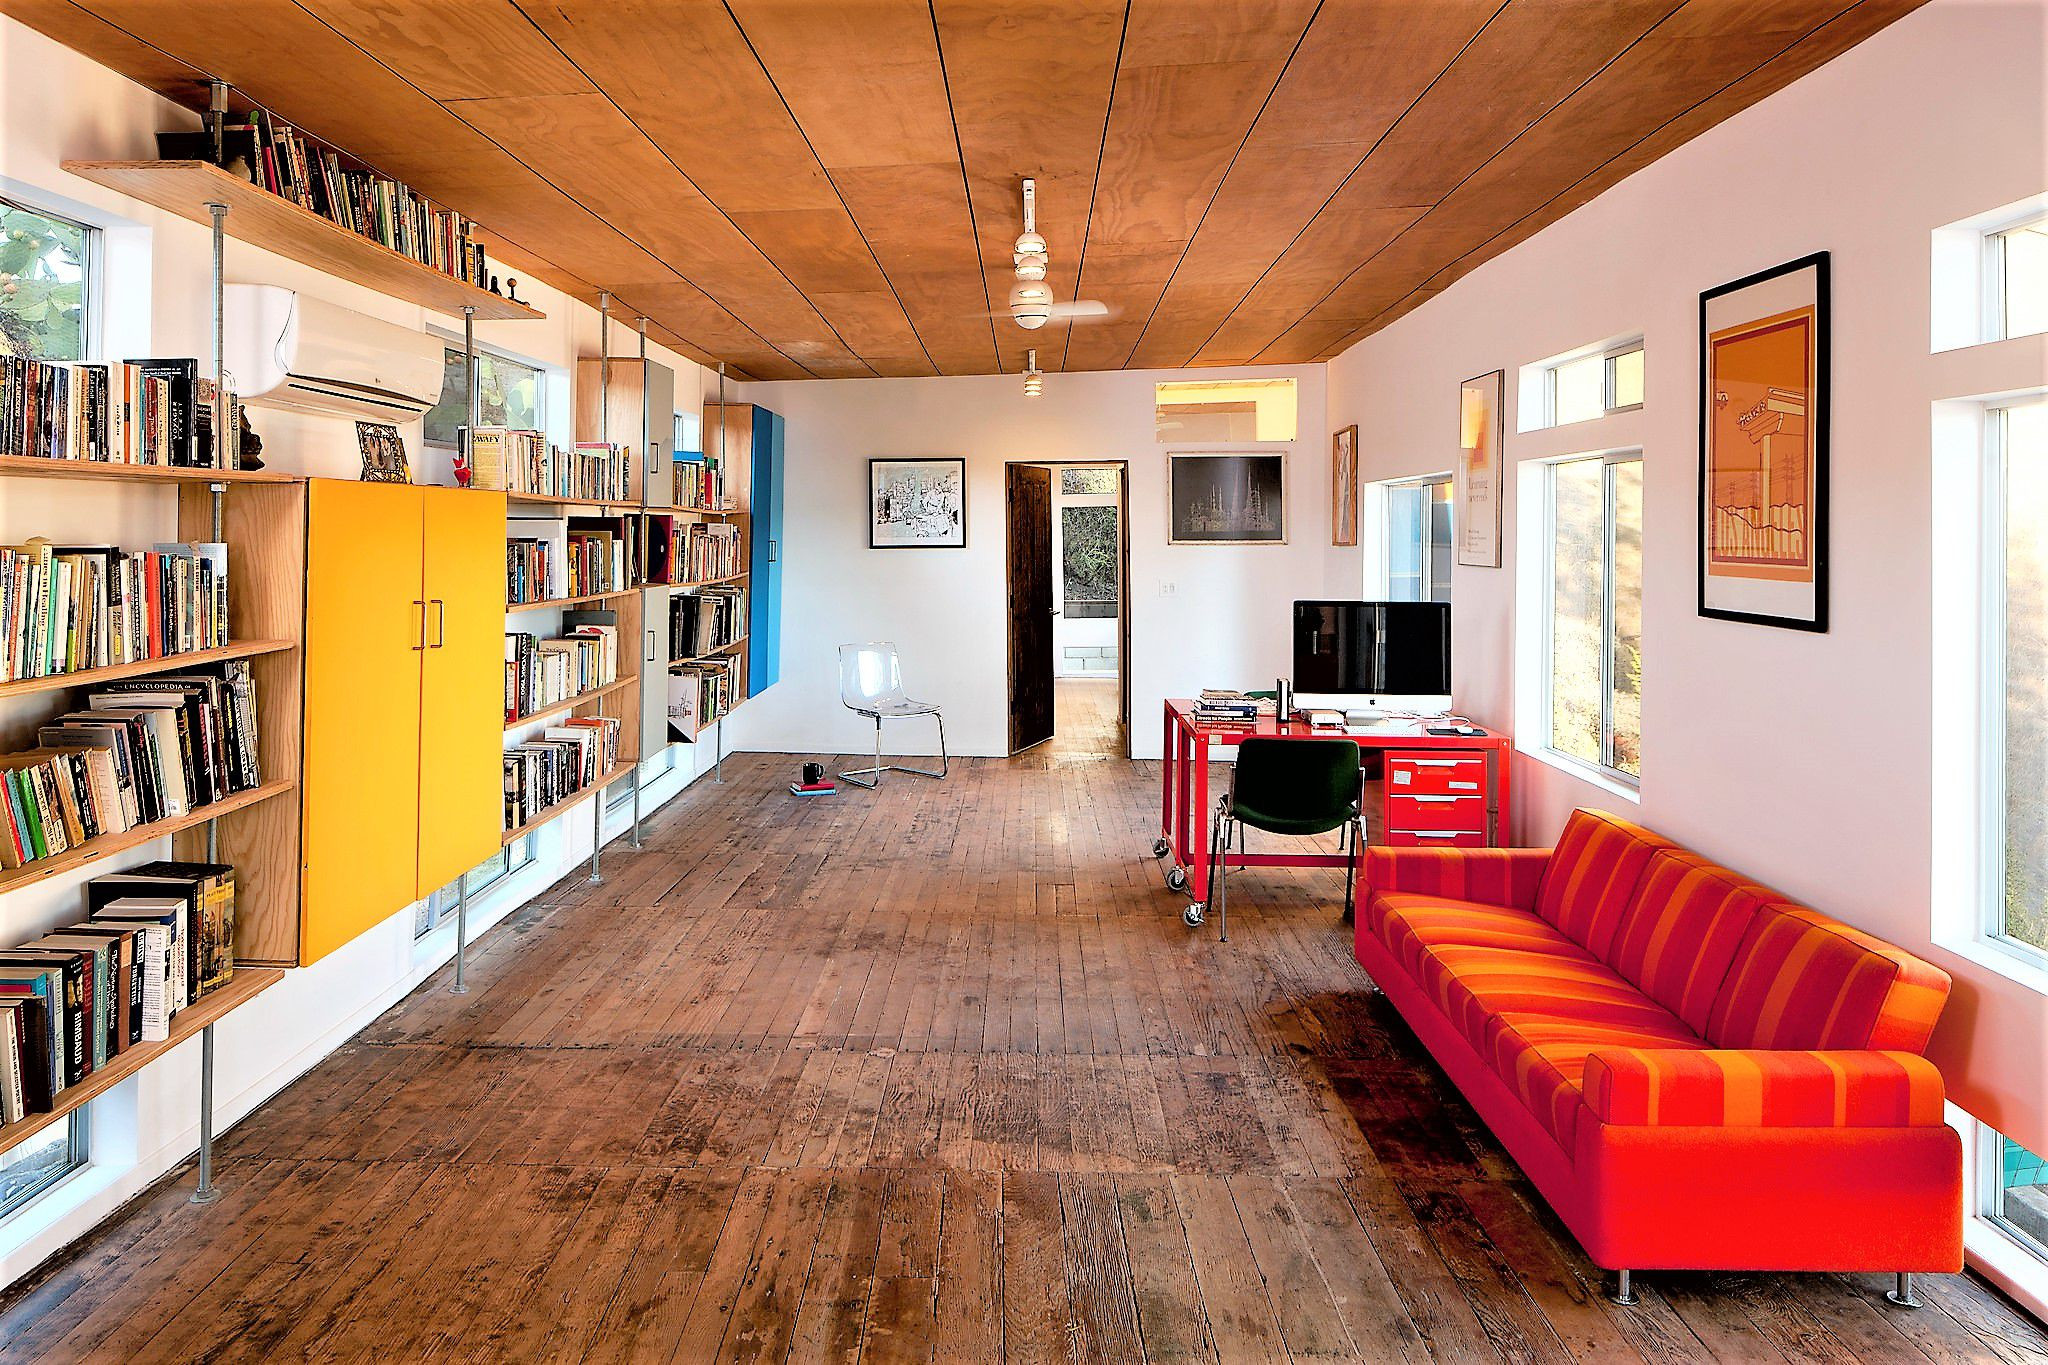 27 Wonderful Hardwood Flooring Options and Cost 2021 free download hardwood flooring options and cost of wood flooring and your homes resale value pertaining to reclaimed wood flooring 2 582f4c535f9b58d5b1b16e62